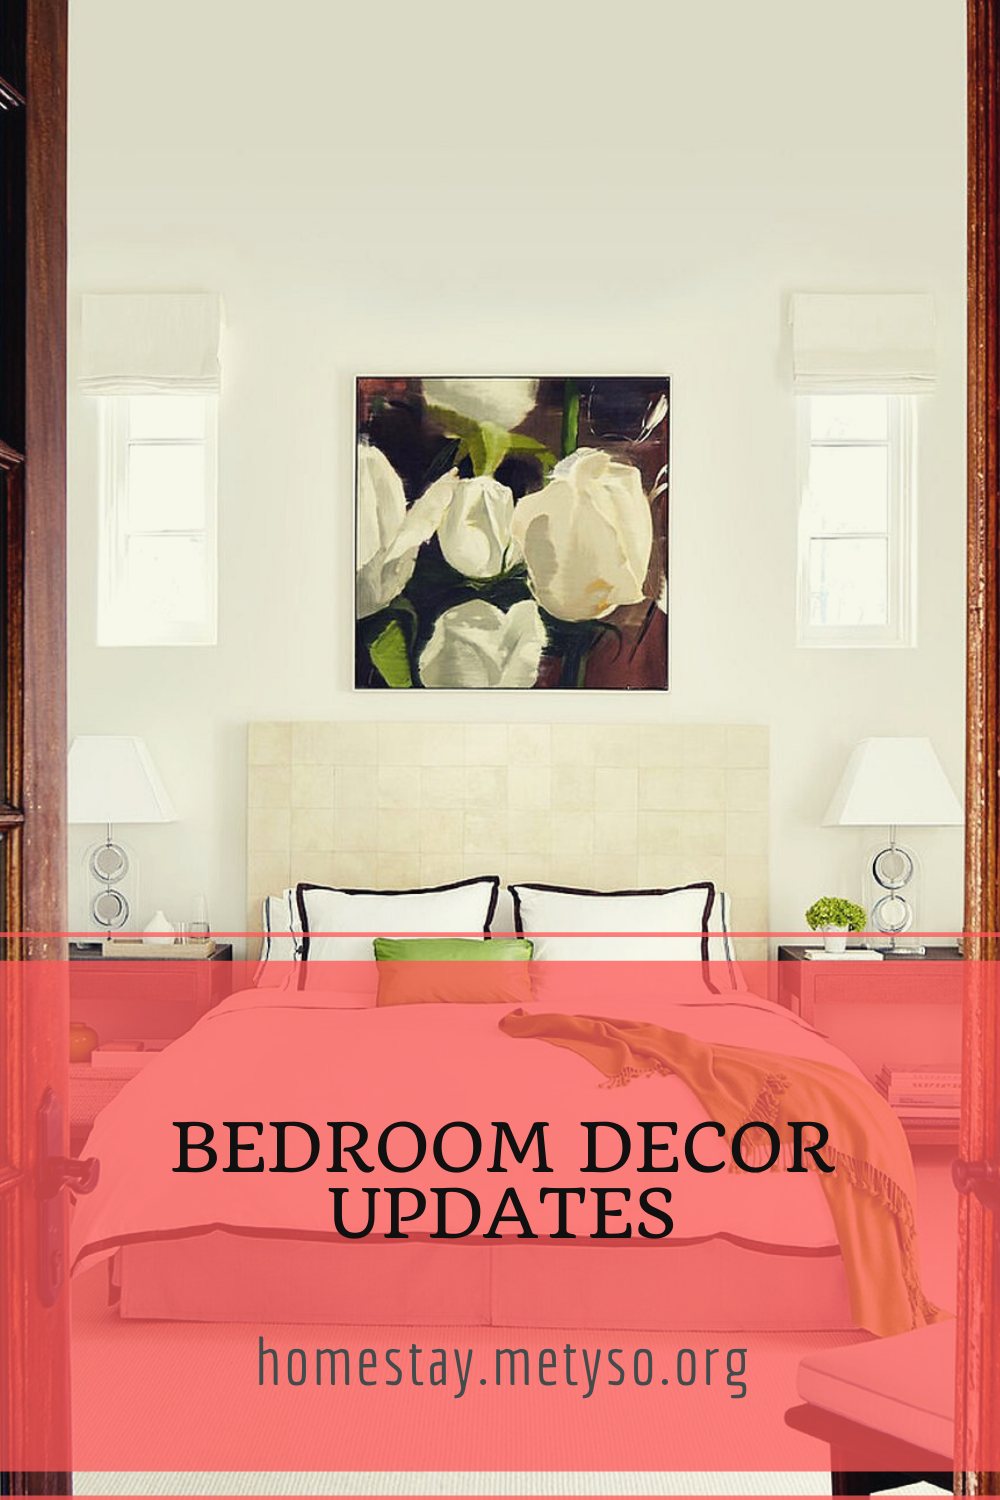 Find out Bedroom Decor to get the inspiration you need and chane the decor of your own home.Click here to see more! #bedroomdecor #bedroomdecoration #bedroomdecorideas #bedroomdecorating #bedroomdecorations